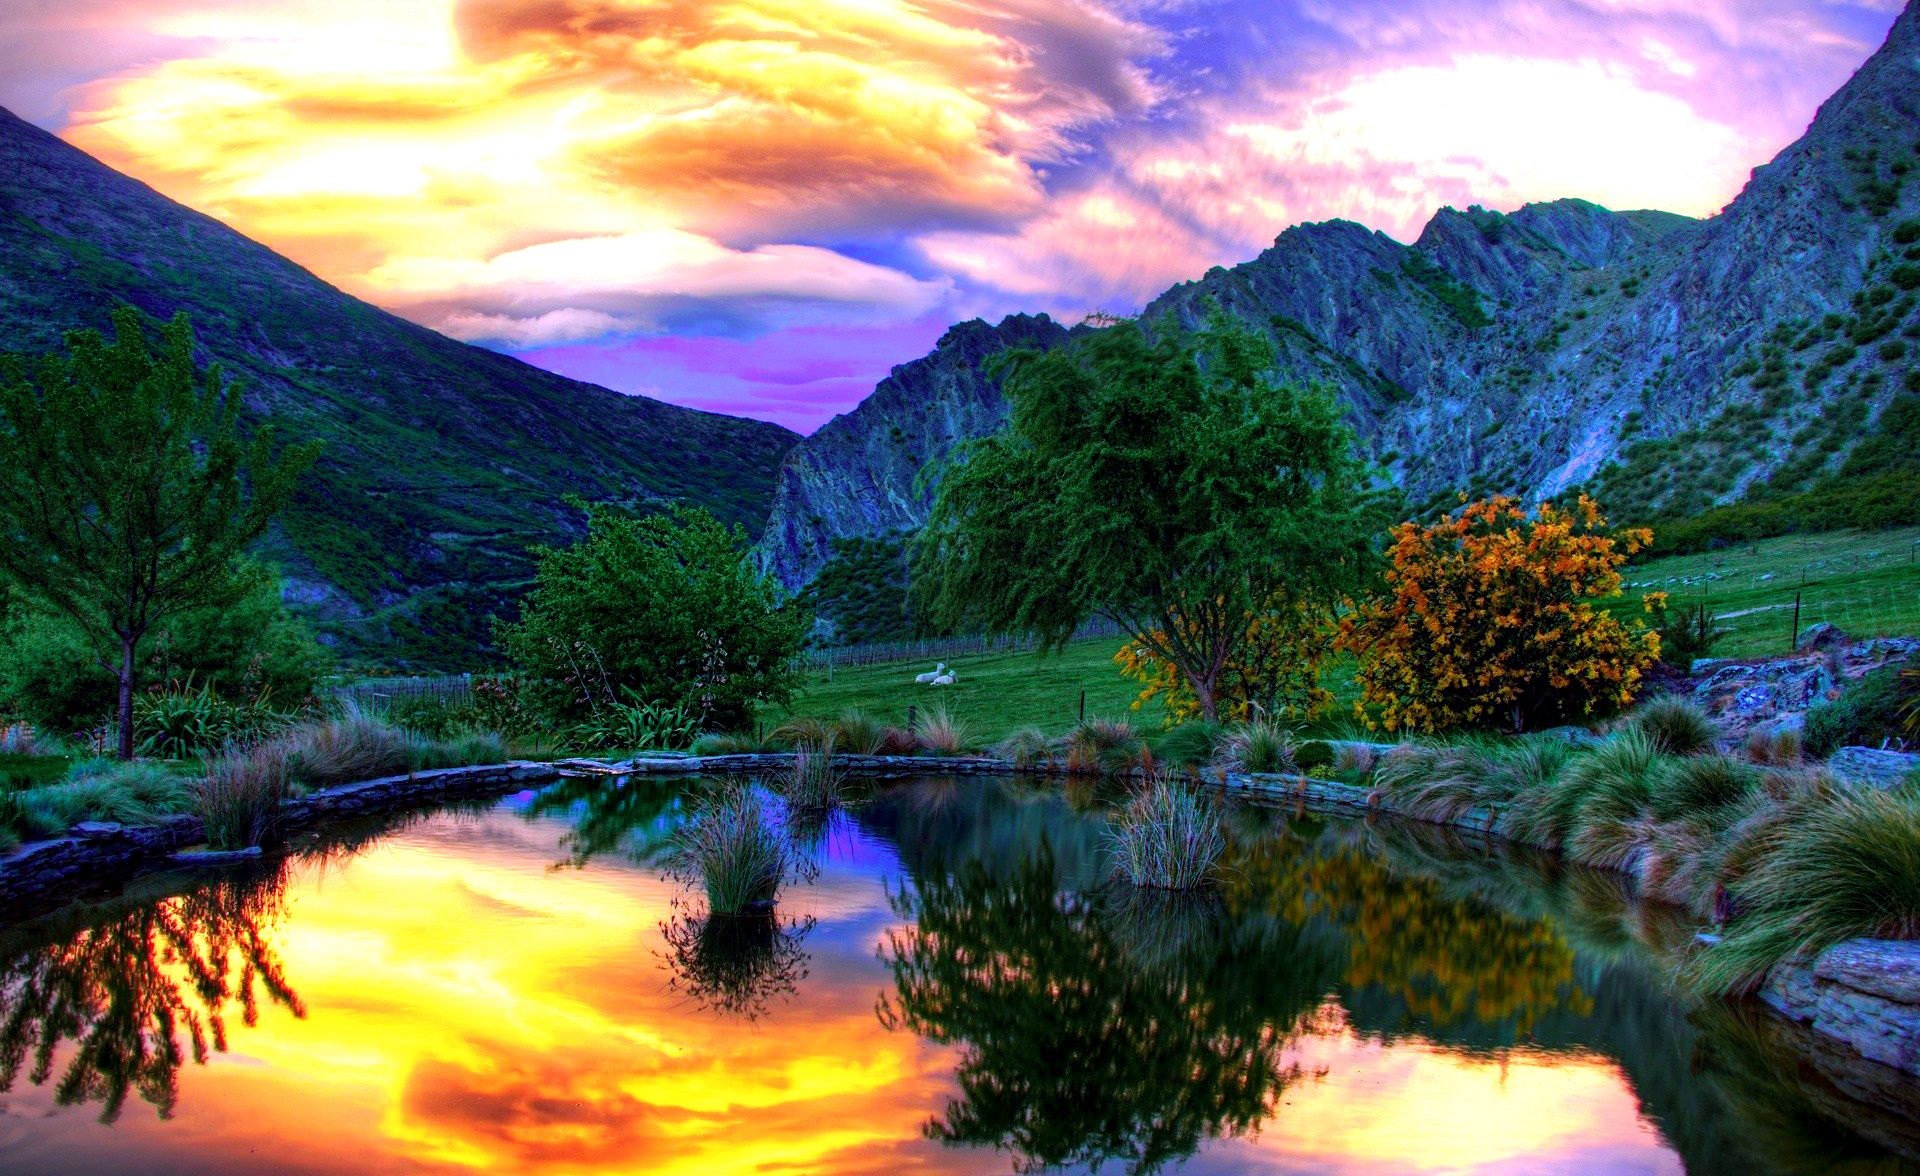 Hd Peaceful Mountain Wallpaper Download Free 74265 Beautiful Places Nature Places